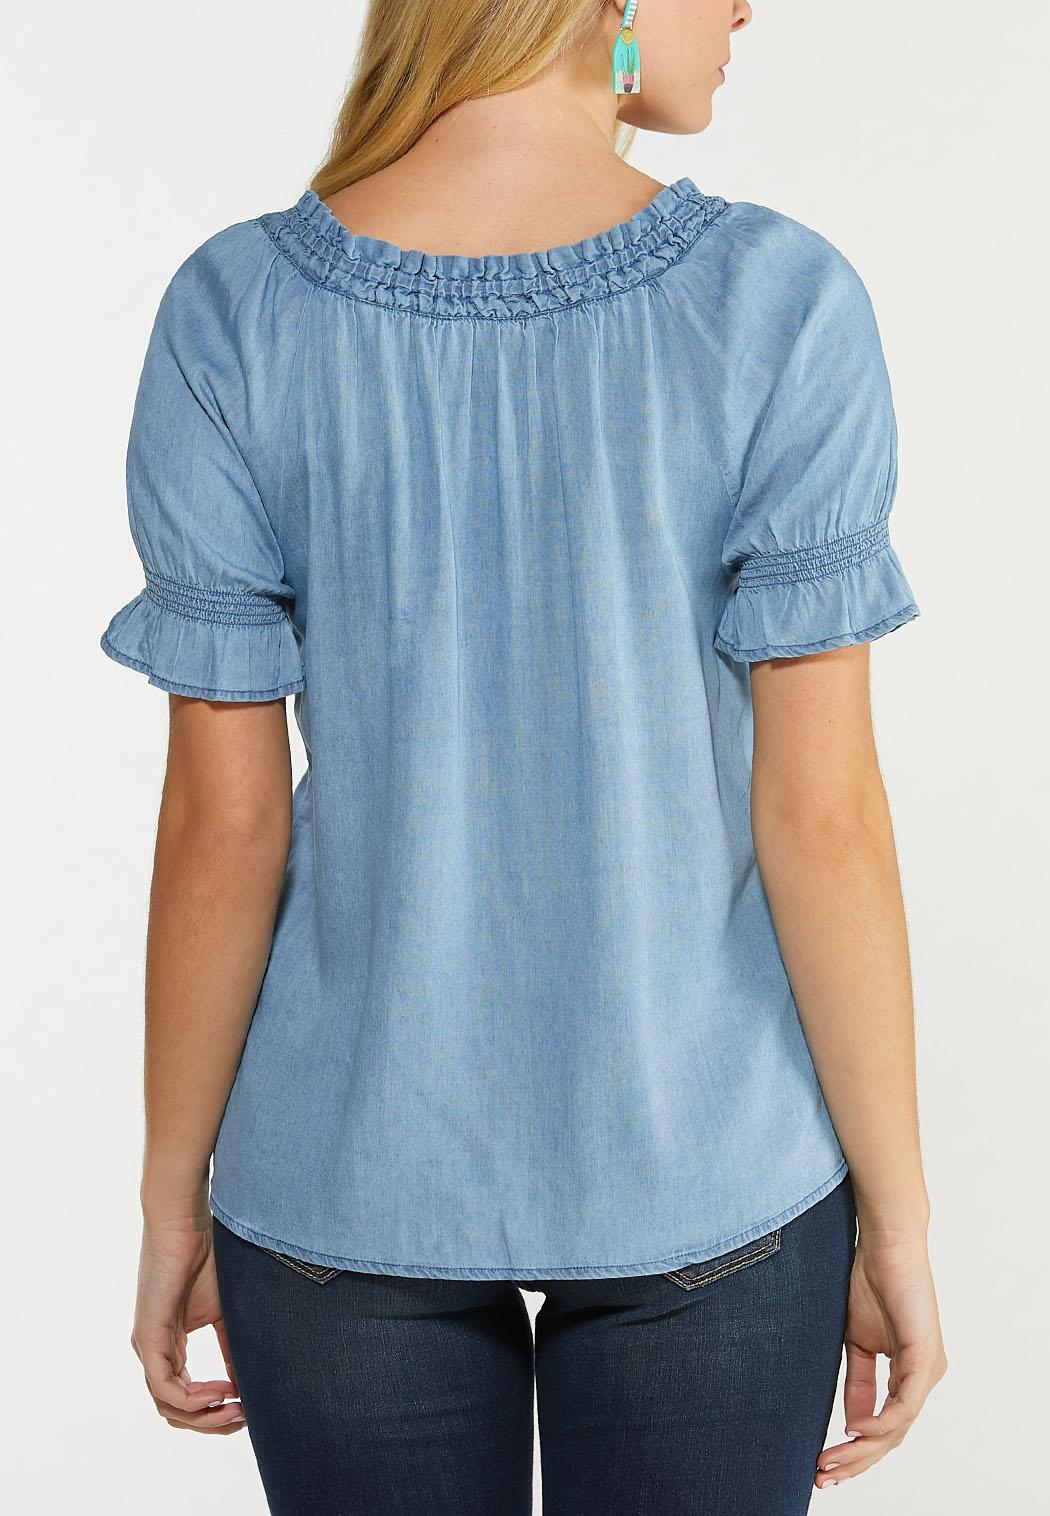 Ruched Chambray Top (Item #44510206)